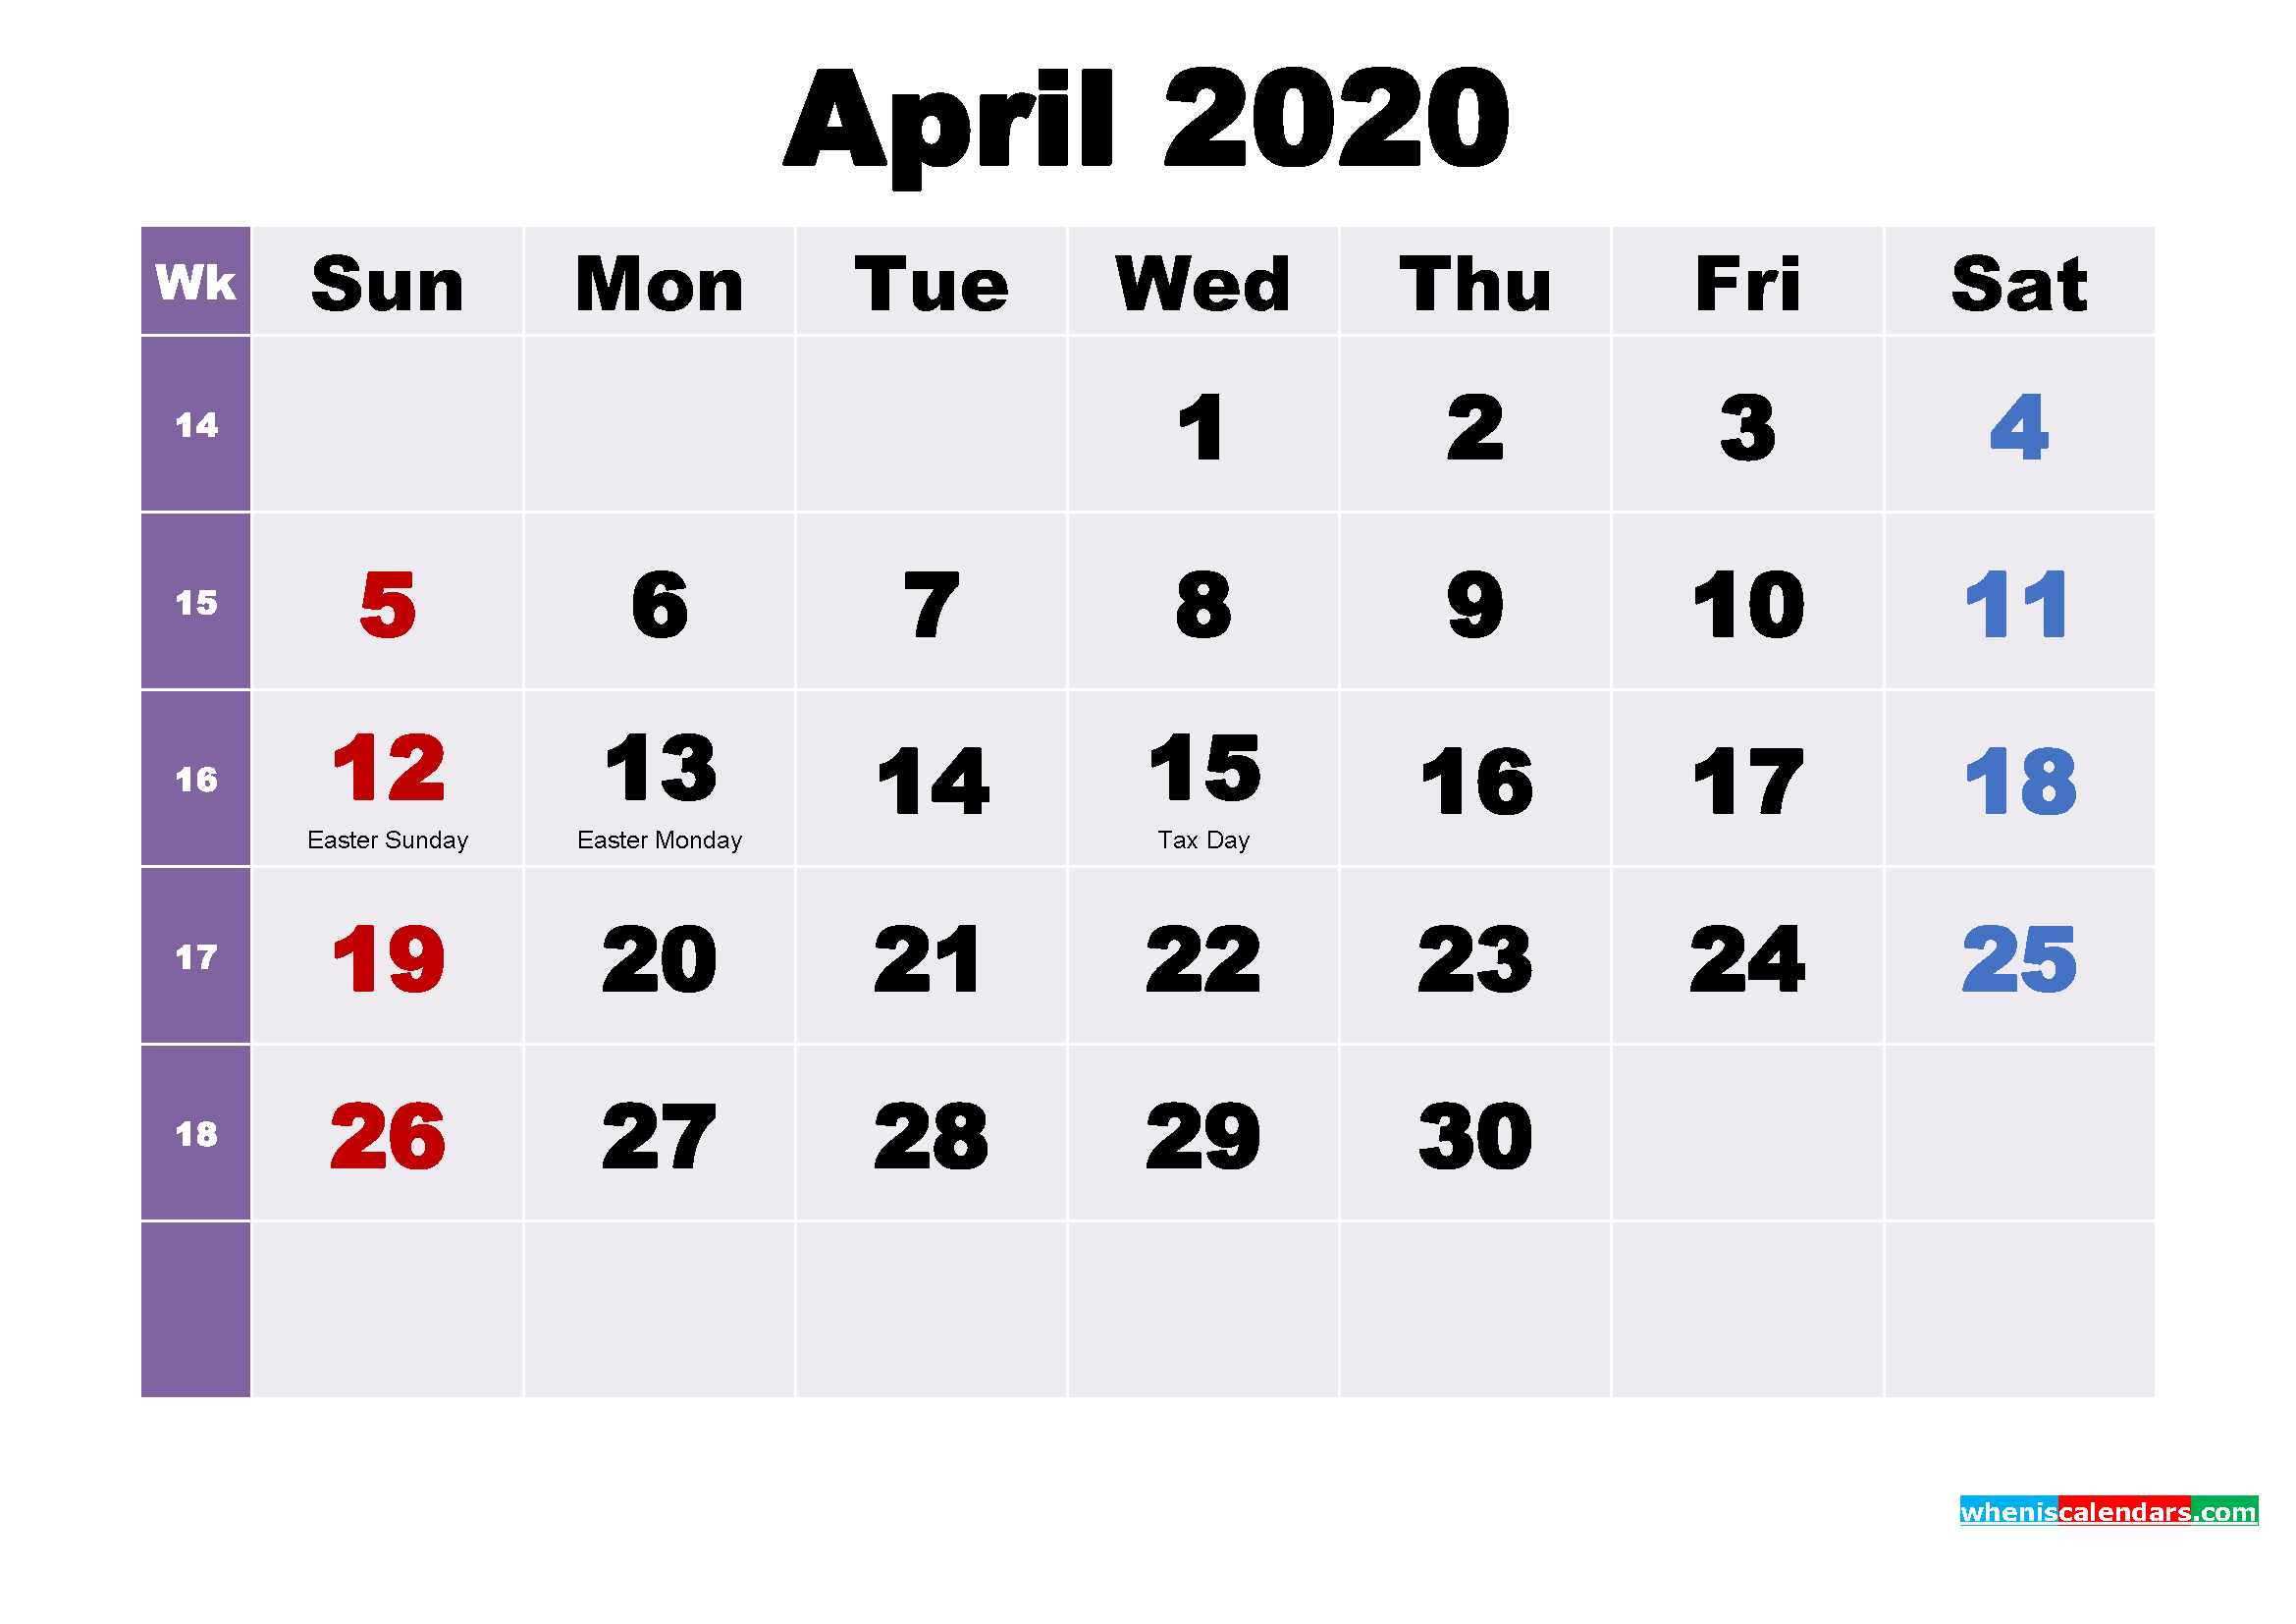 Printable 2020 Calendar by Month April